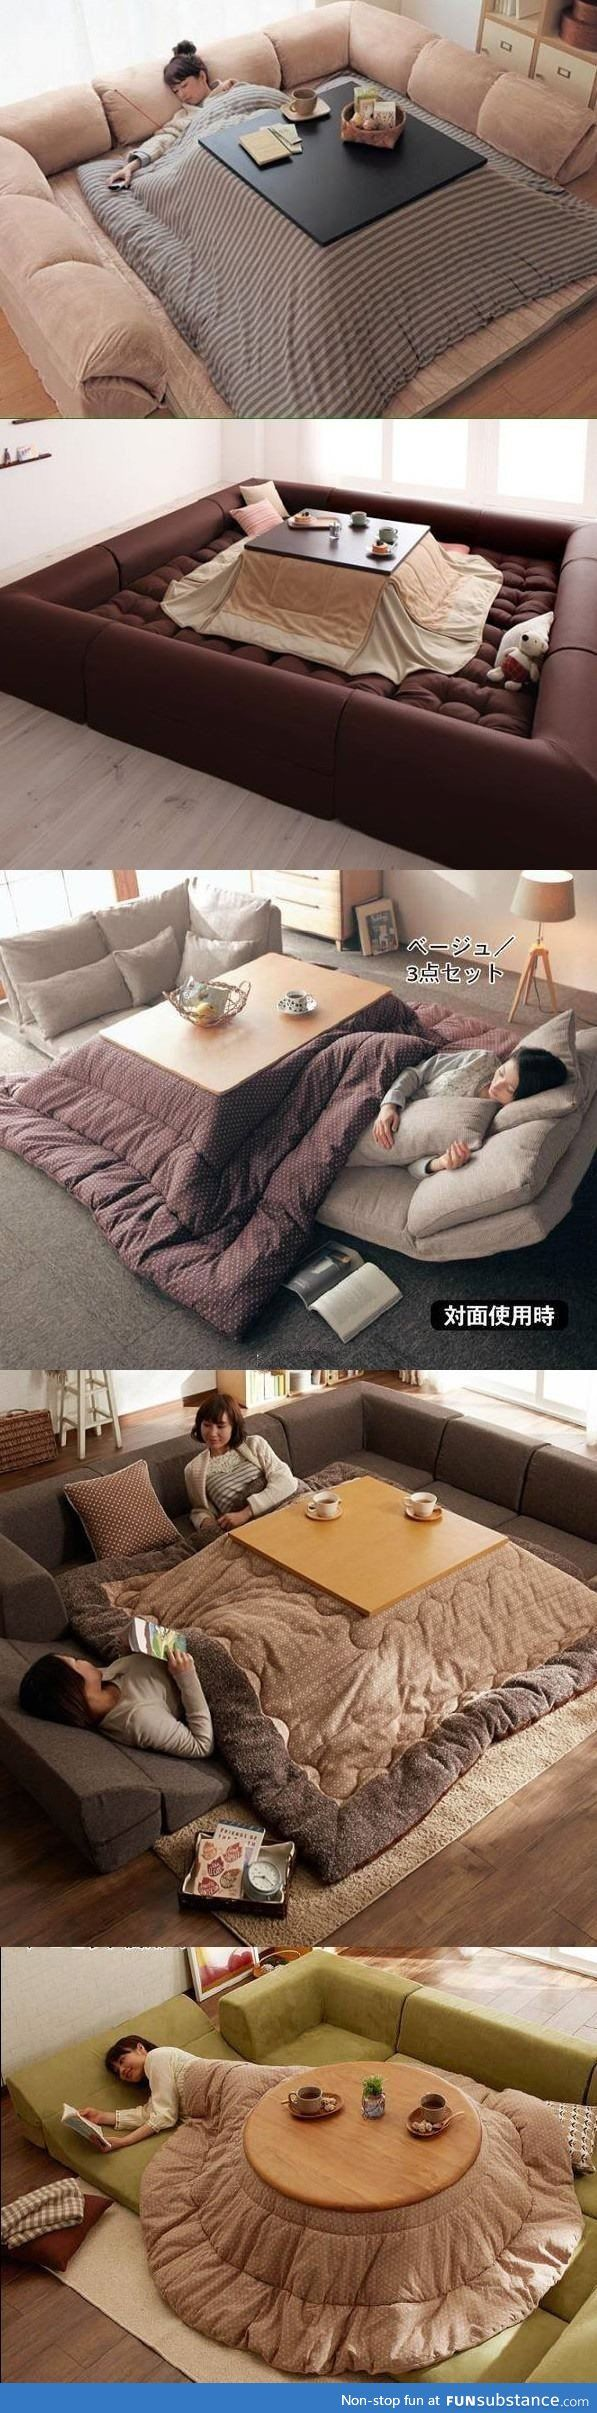 "Omg, I'd never leave this spot and happily die here haha. ""Japanese style. Rather than heating the whole house, just heat under the table."""